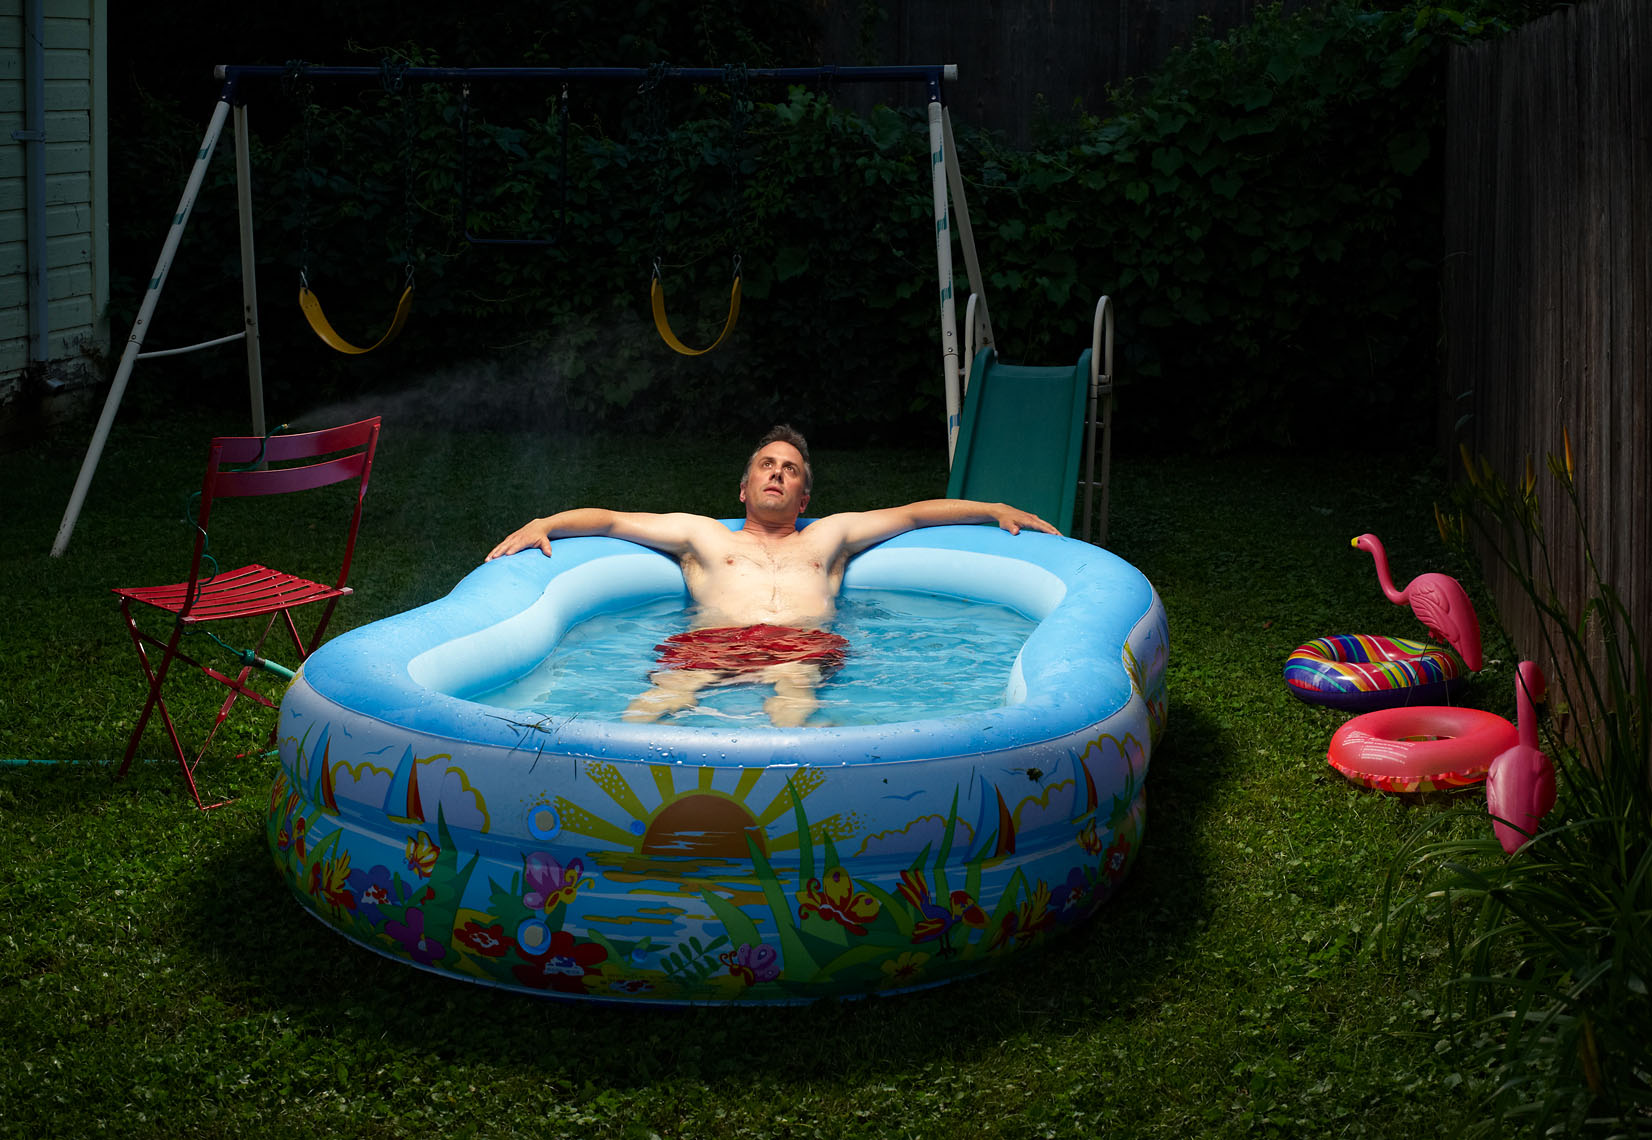 Middle aged man soaks in kiddie pool lifestyle